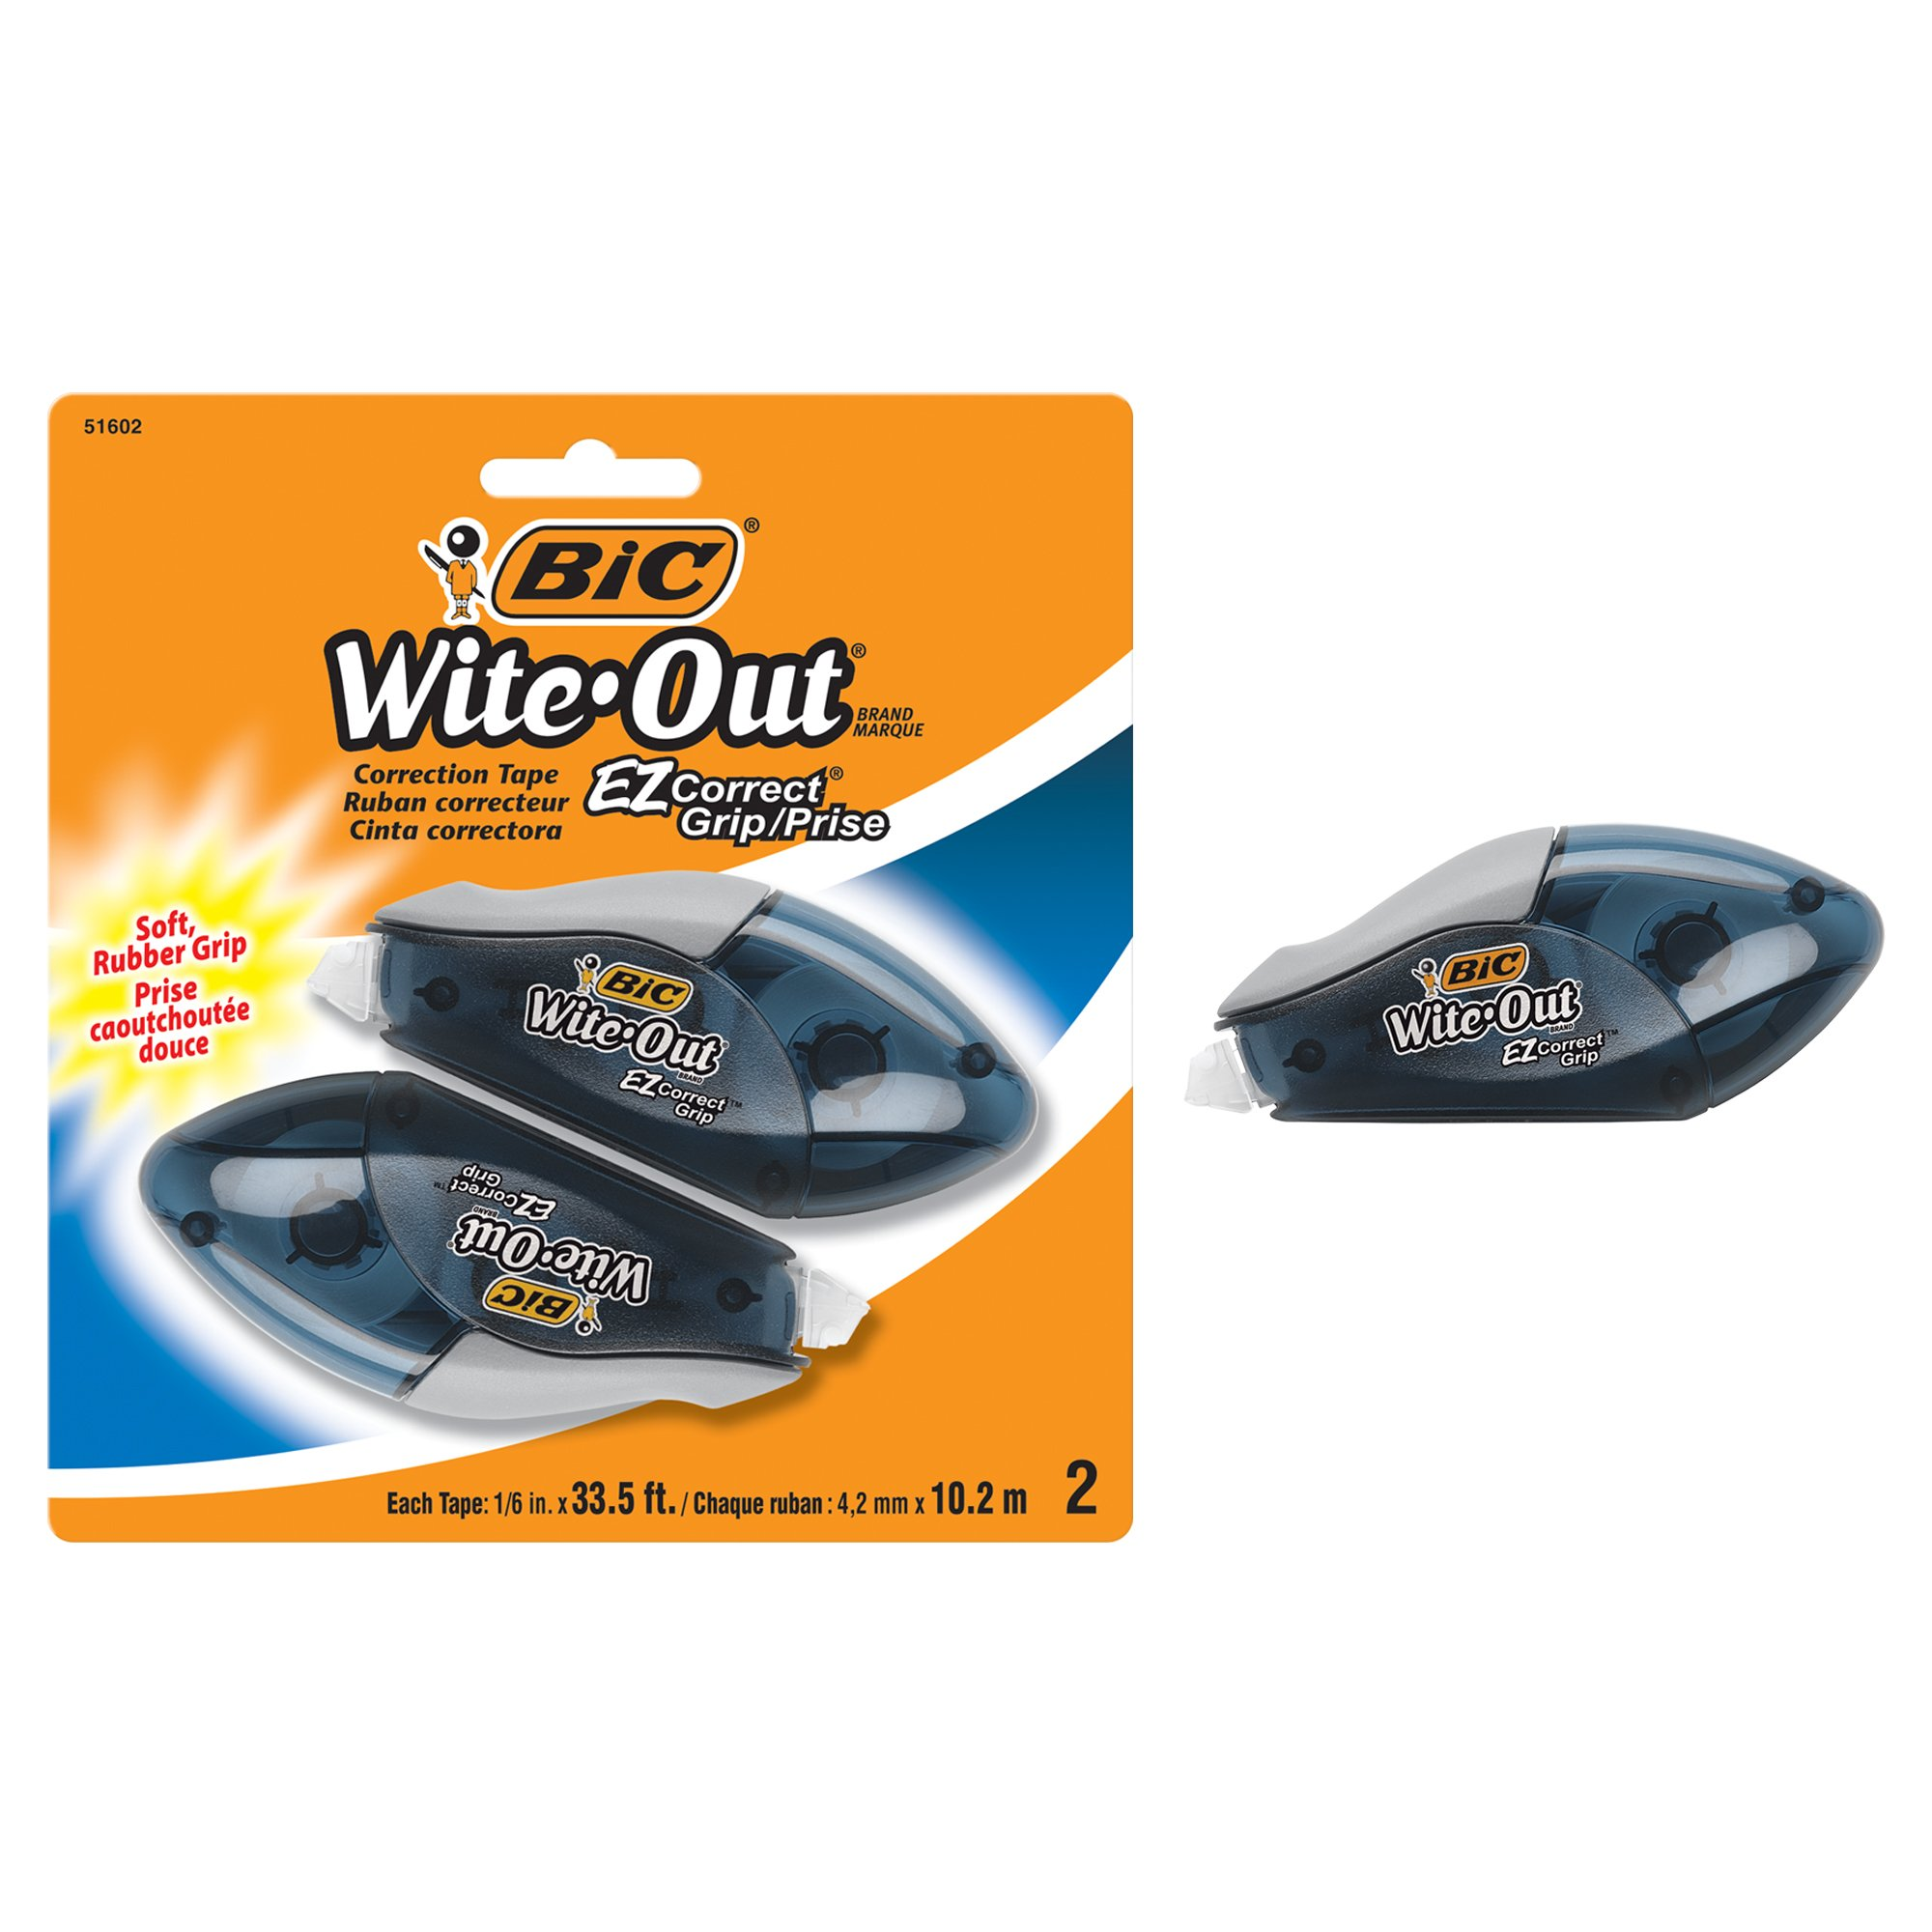 BIC Wite-Out Brand EZ Correct Grip Correction Tape, White, 2-Count by BIC (Image #1)